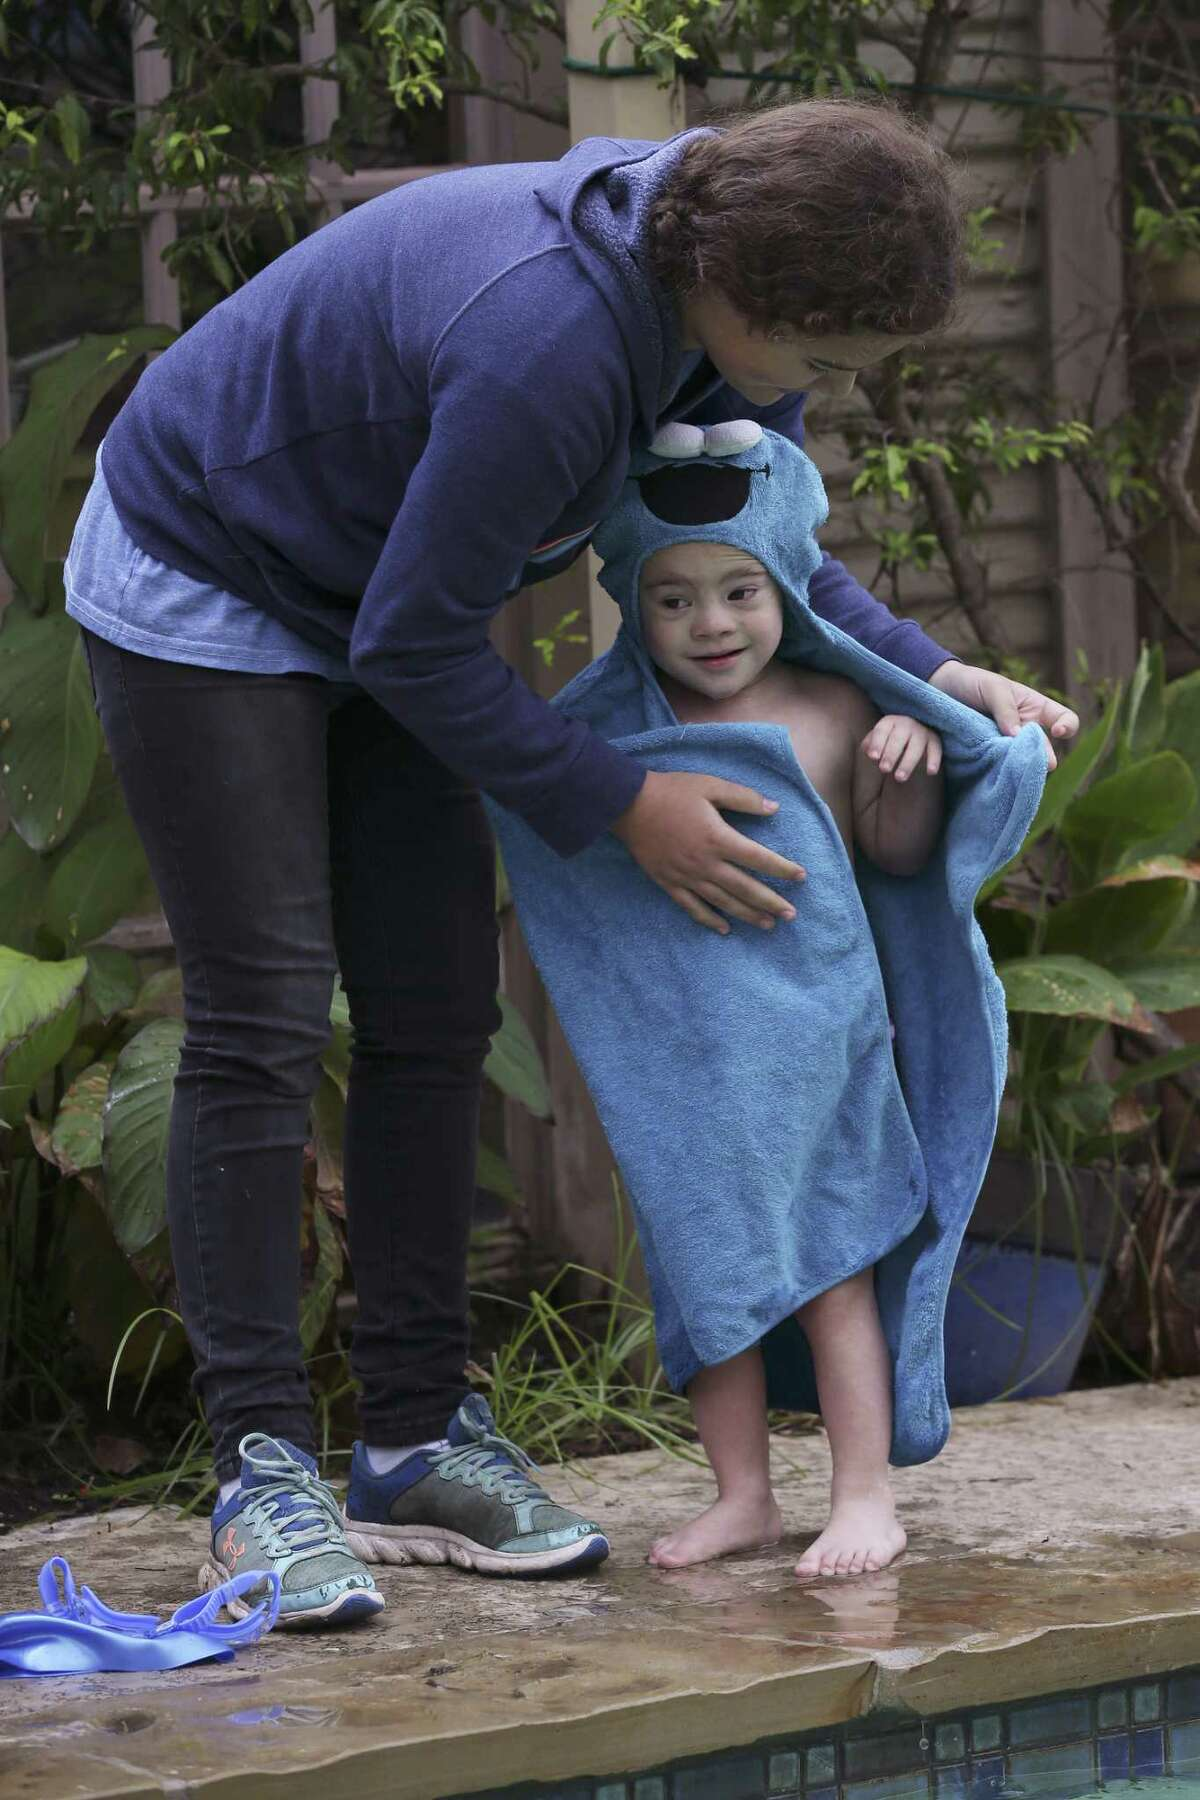 Ava Berios, 12, helps her brother, Teddy, 3, dry off after swimming lessons with Diana Perry on Oct. 23. The special-needs tyke has taken to the water like the proverbial fish, thanks to Perry's individualized instruction.